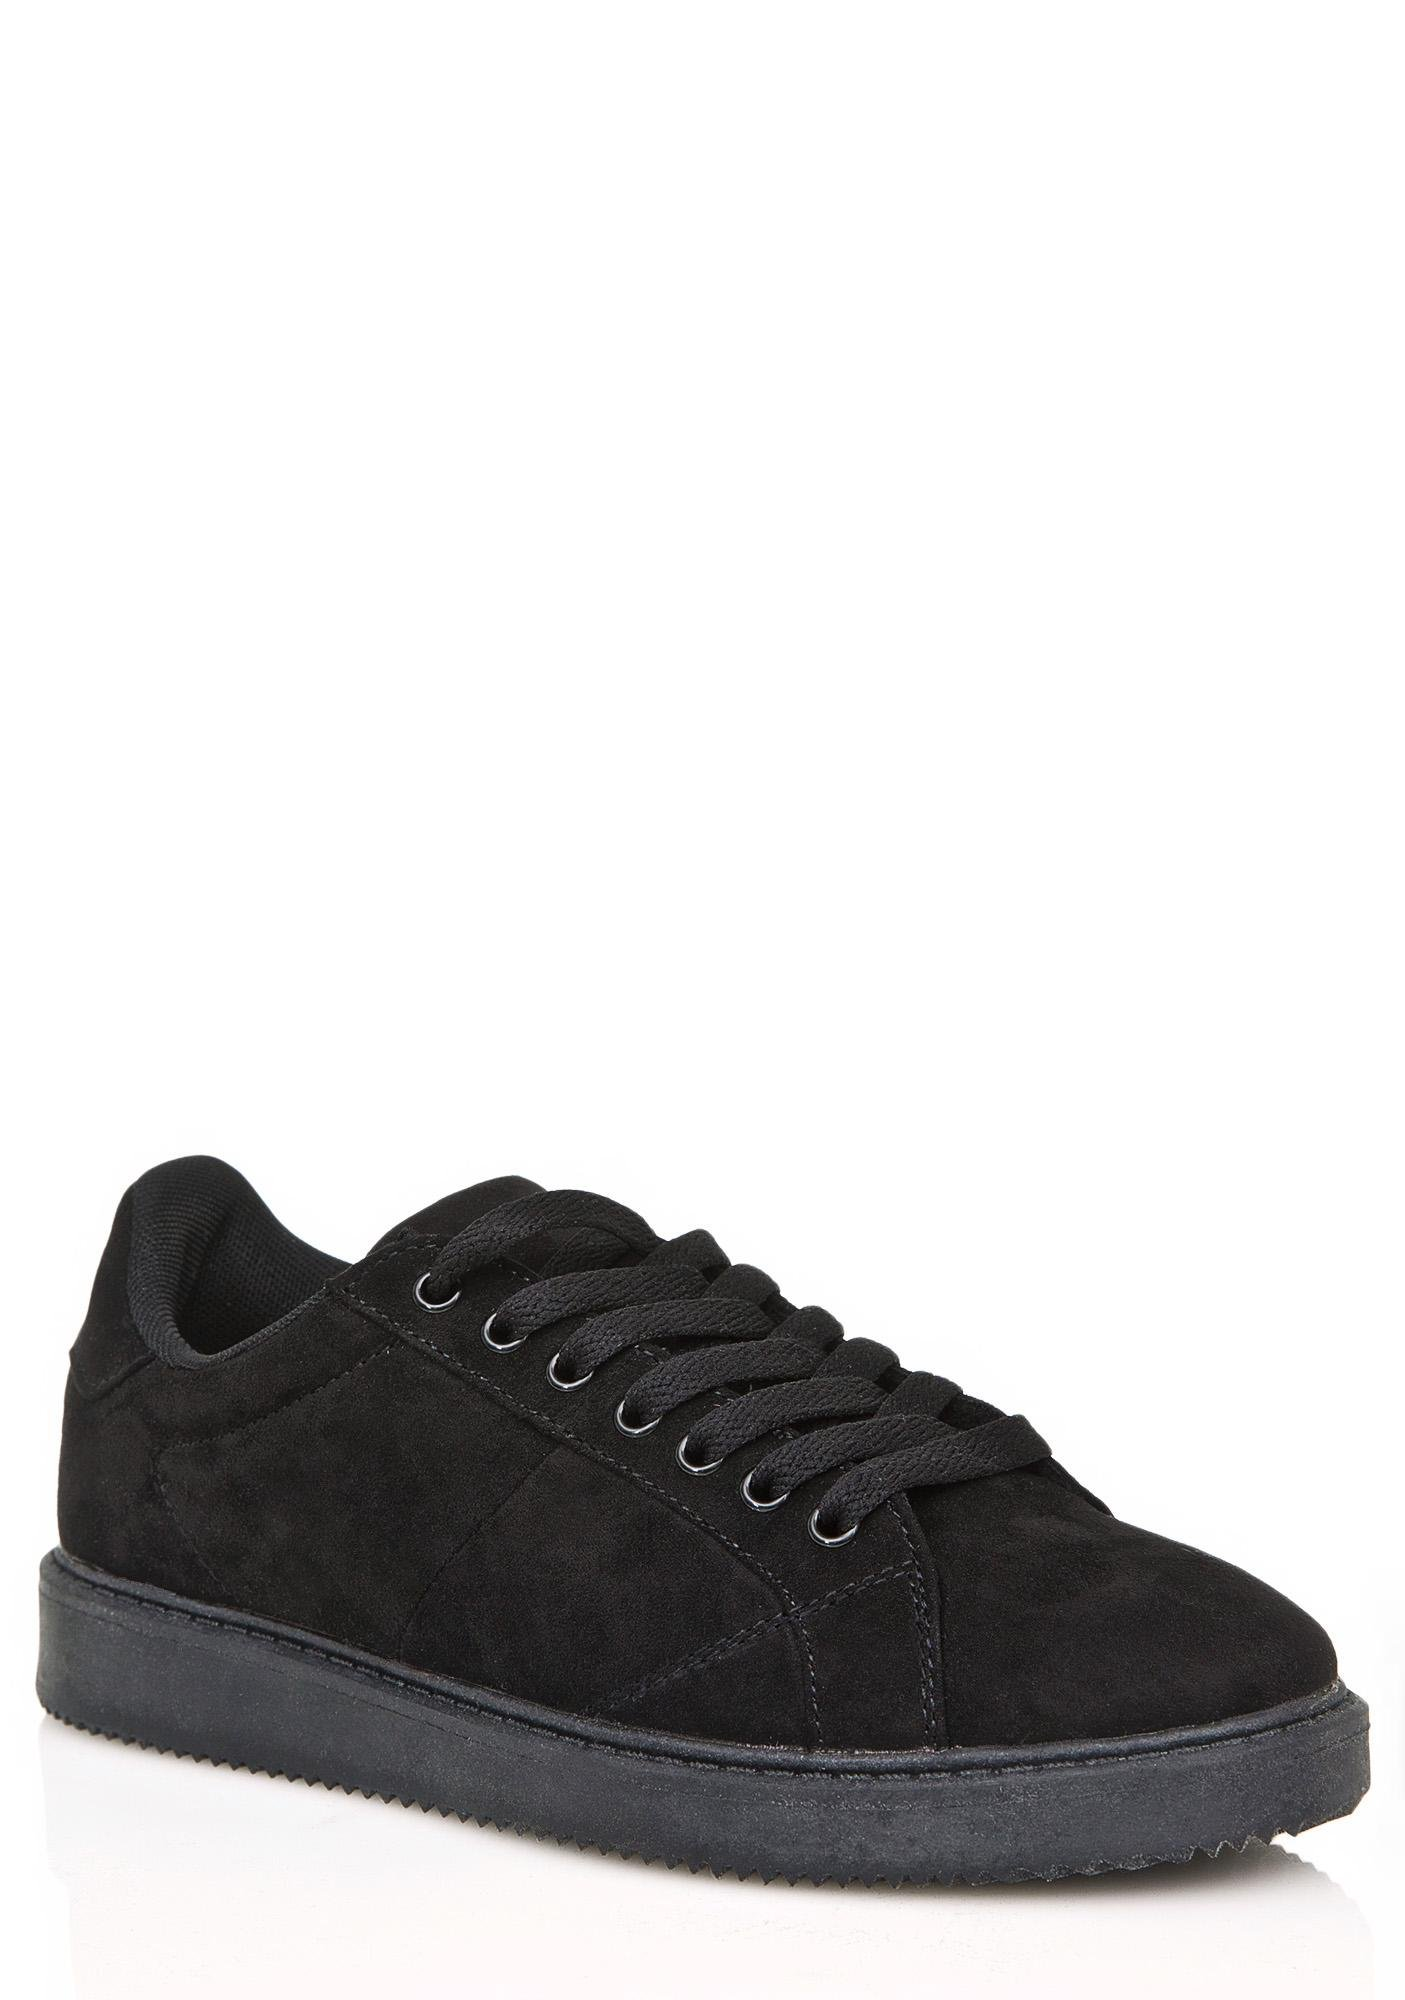 Metro Monochrome Sneakers